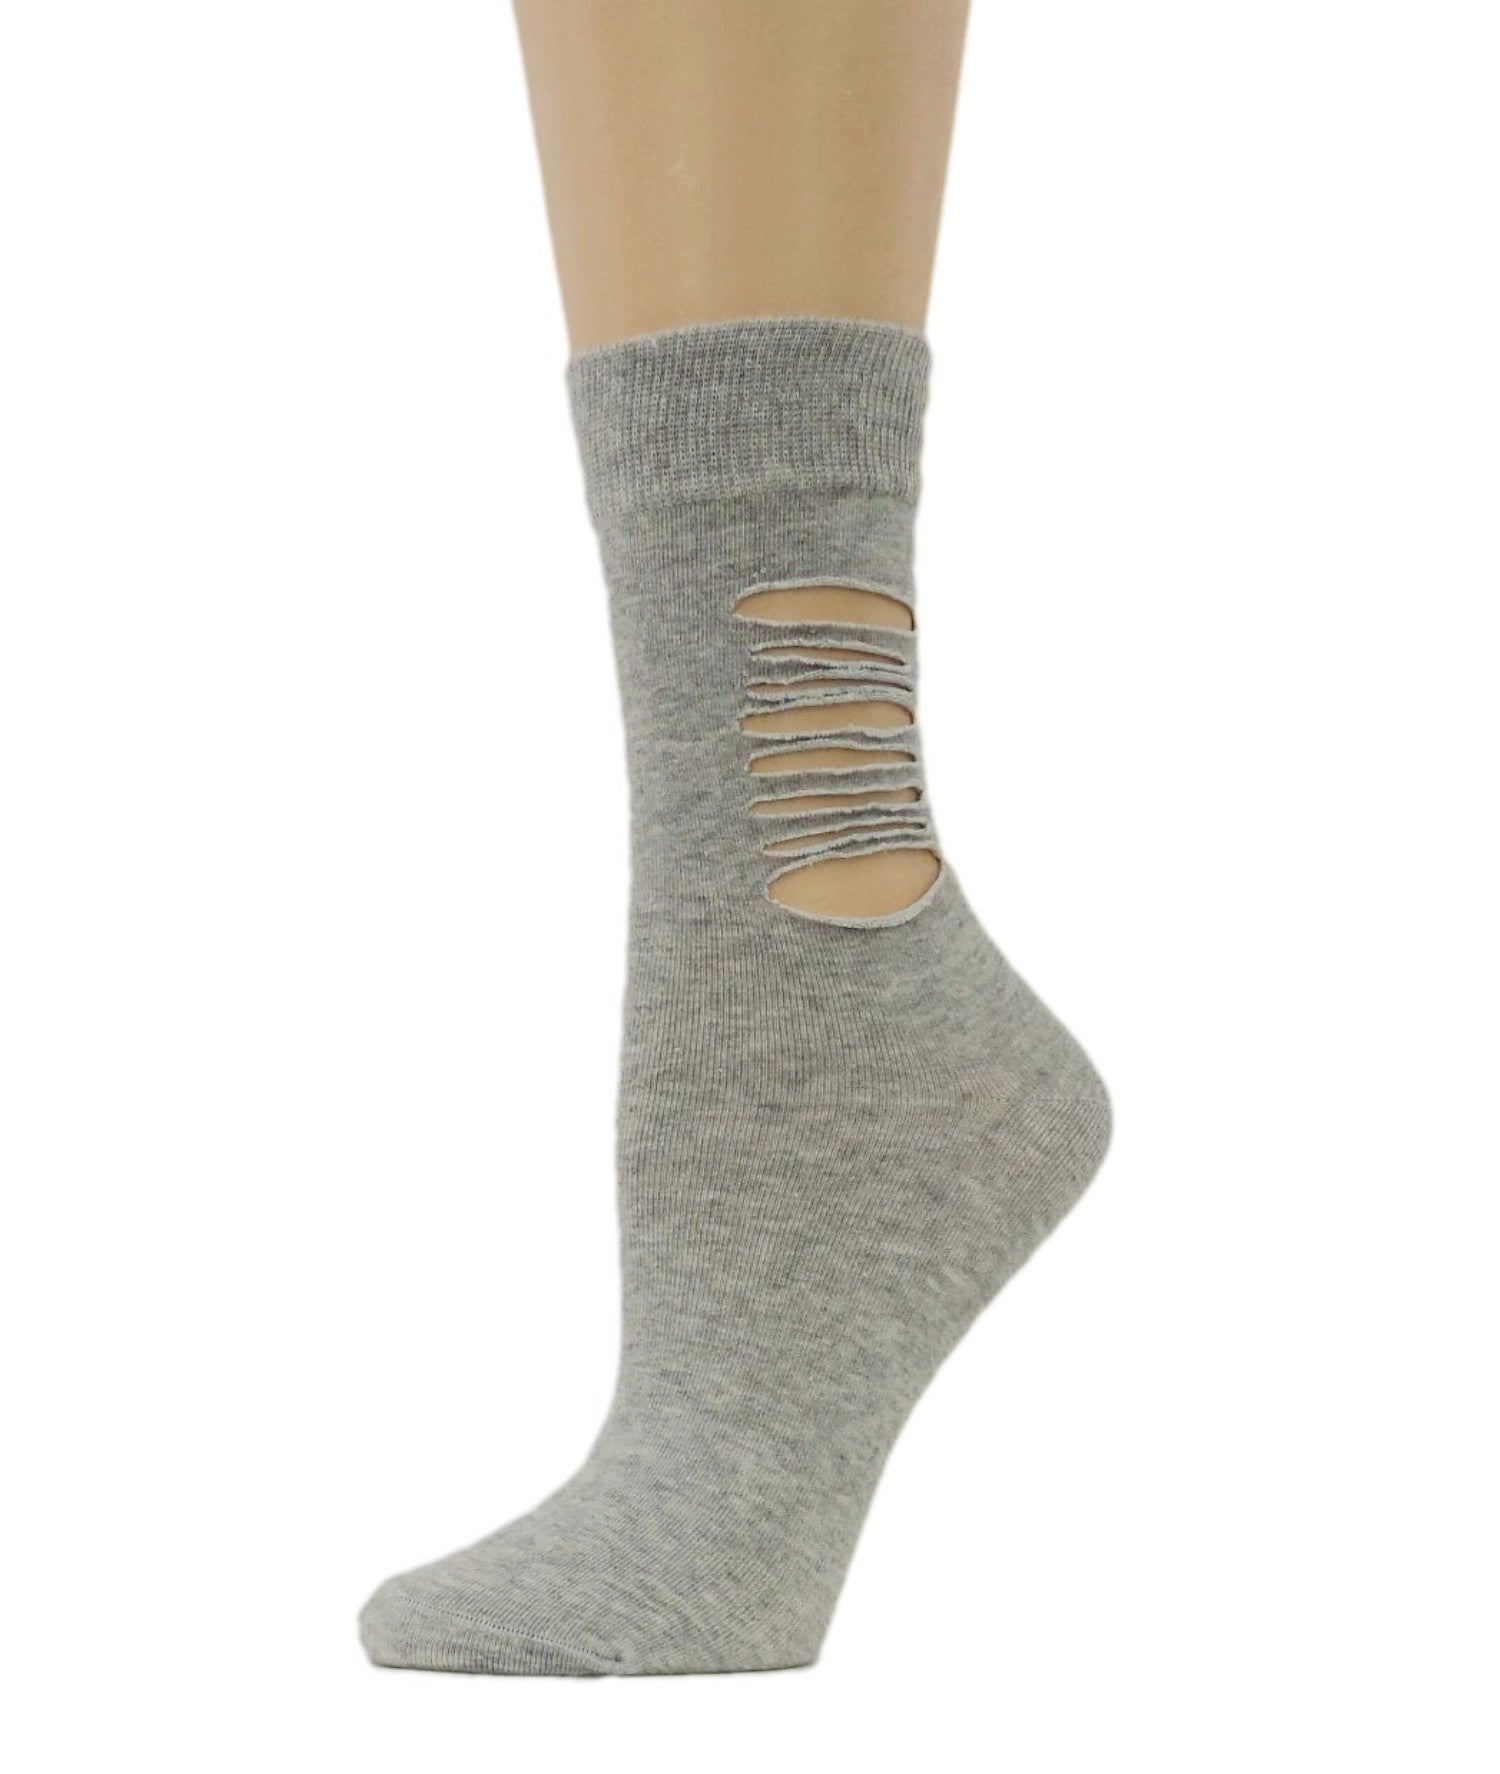 Ripped Grey Cotton Socks - Global Trendz Fashion®